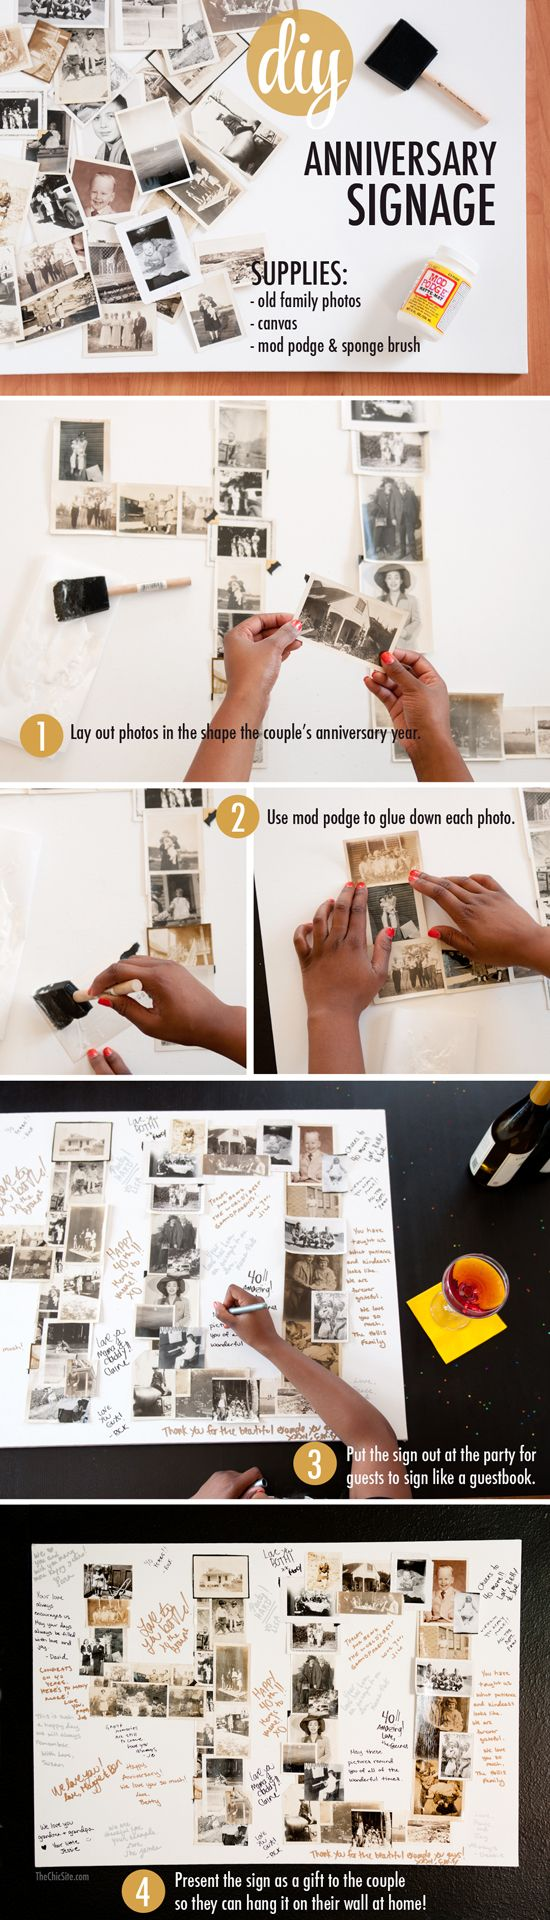 Anniversary Signage ~ This is a great gift idea for an anniversary party! Make a collage out of family pictures and have all of the guests sign.